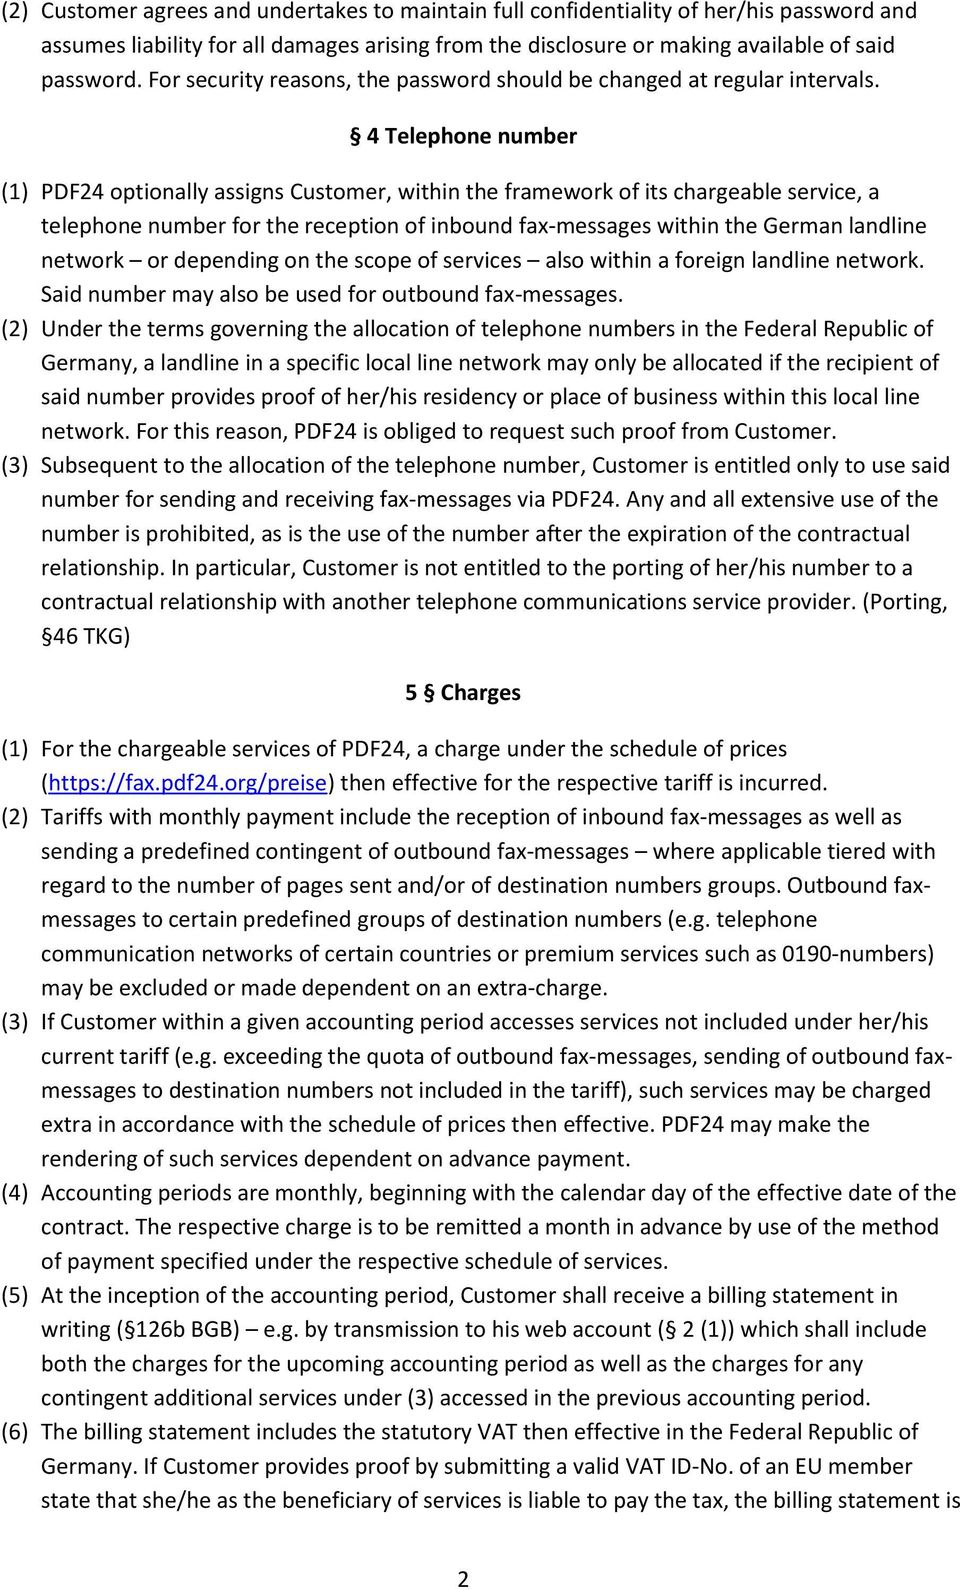 4 Telephone number (1) PDF24 optionally assigns Customer, within the framework of its chargeable service, a telephone number for the reception of inbound fax-messages within the German landline